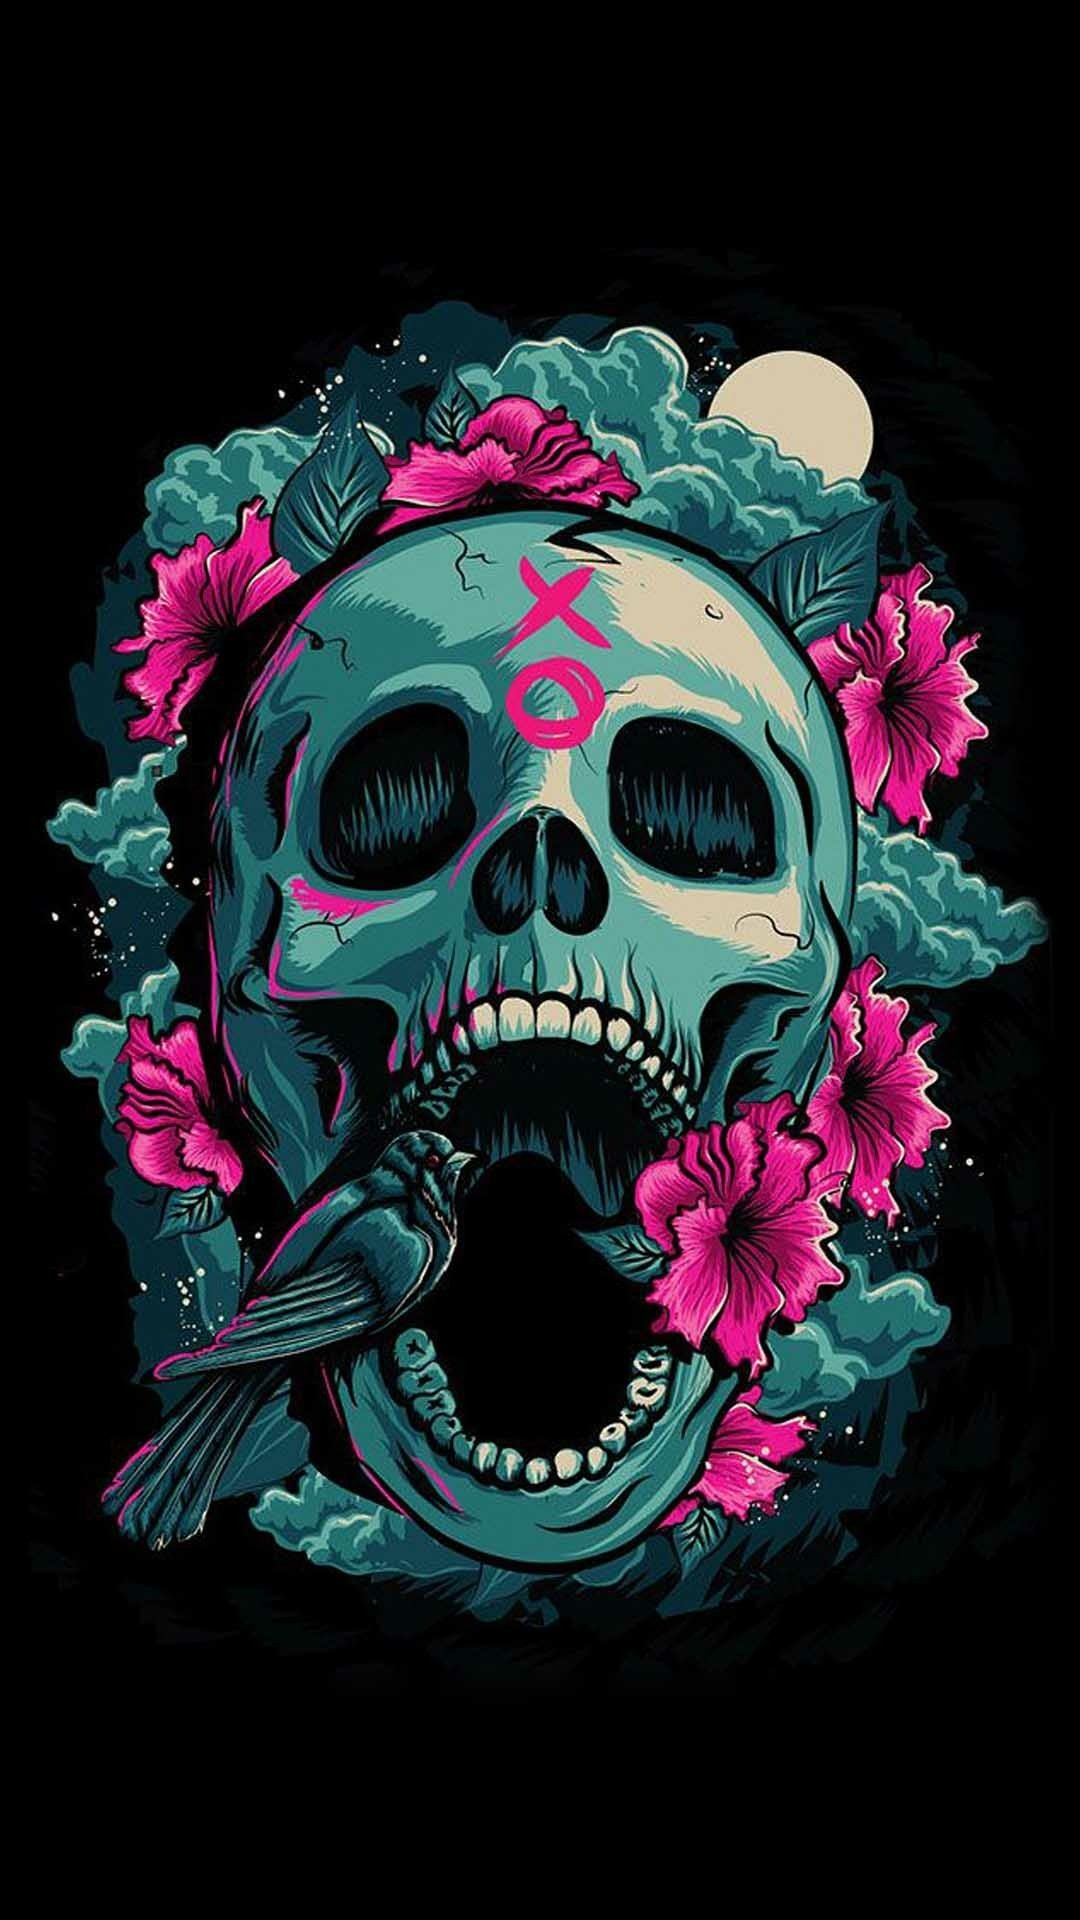 1080x1920 Sugar Skull Wallpaper For IPhone 62 Images